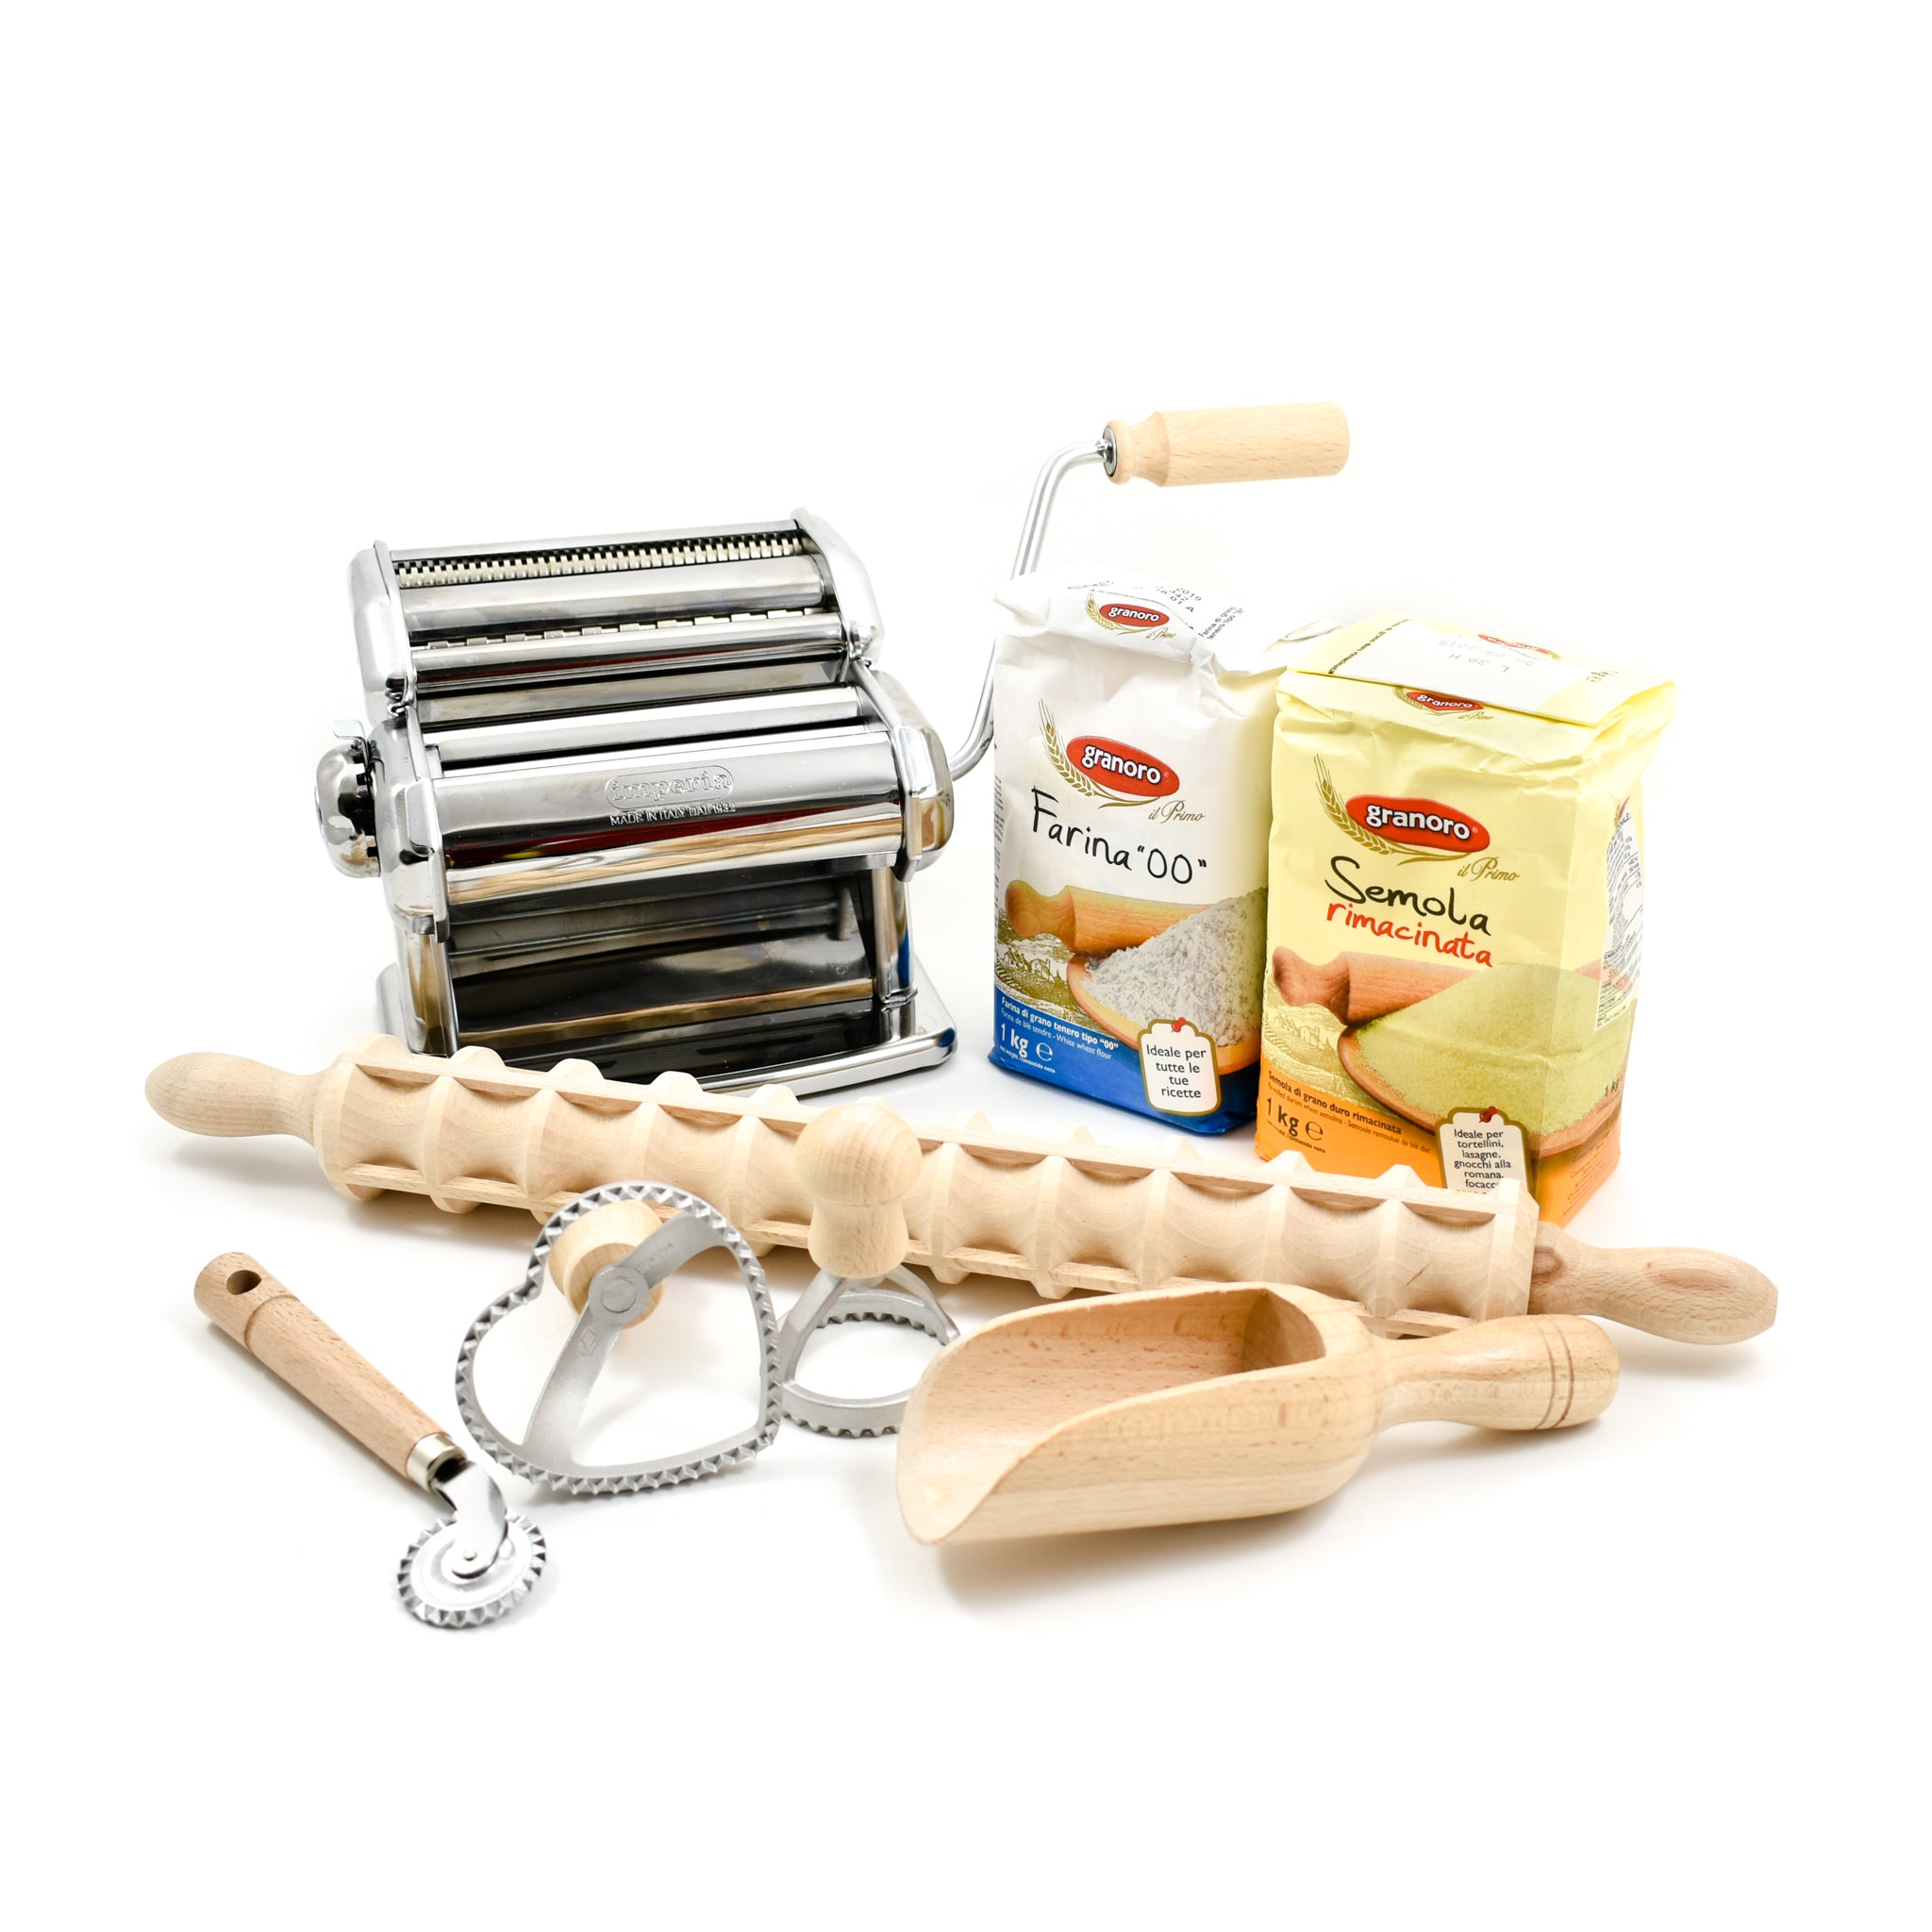 Sous Chef Kit Complete Pasta Making Kit Gifts Cookbook & Ingredients Sets